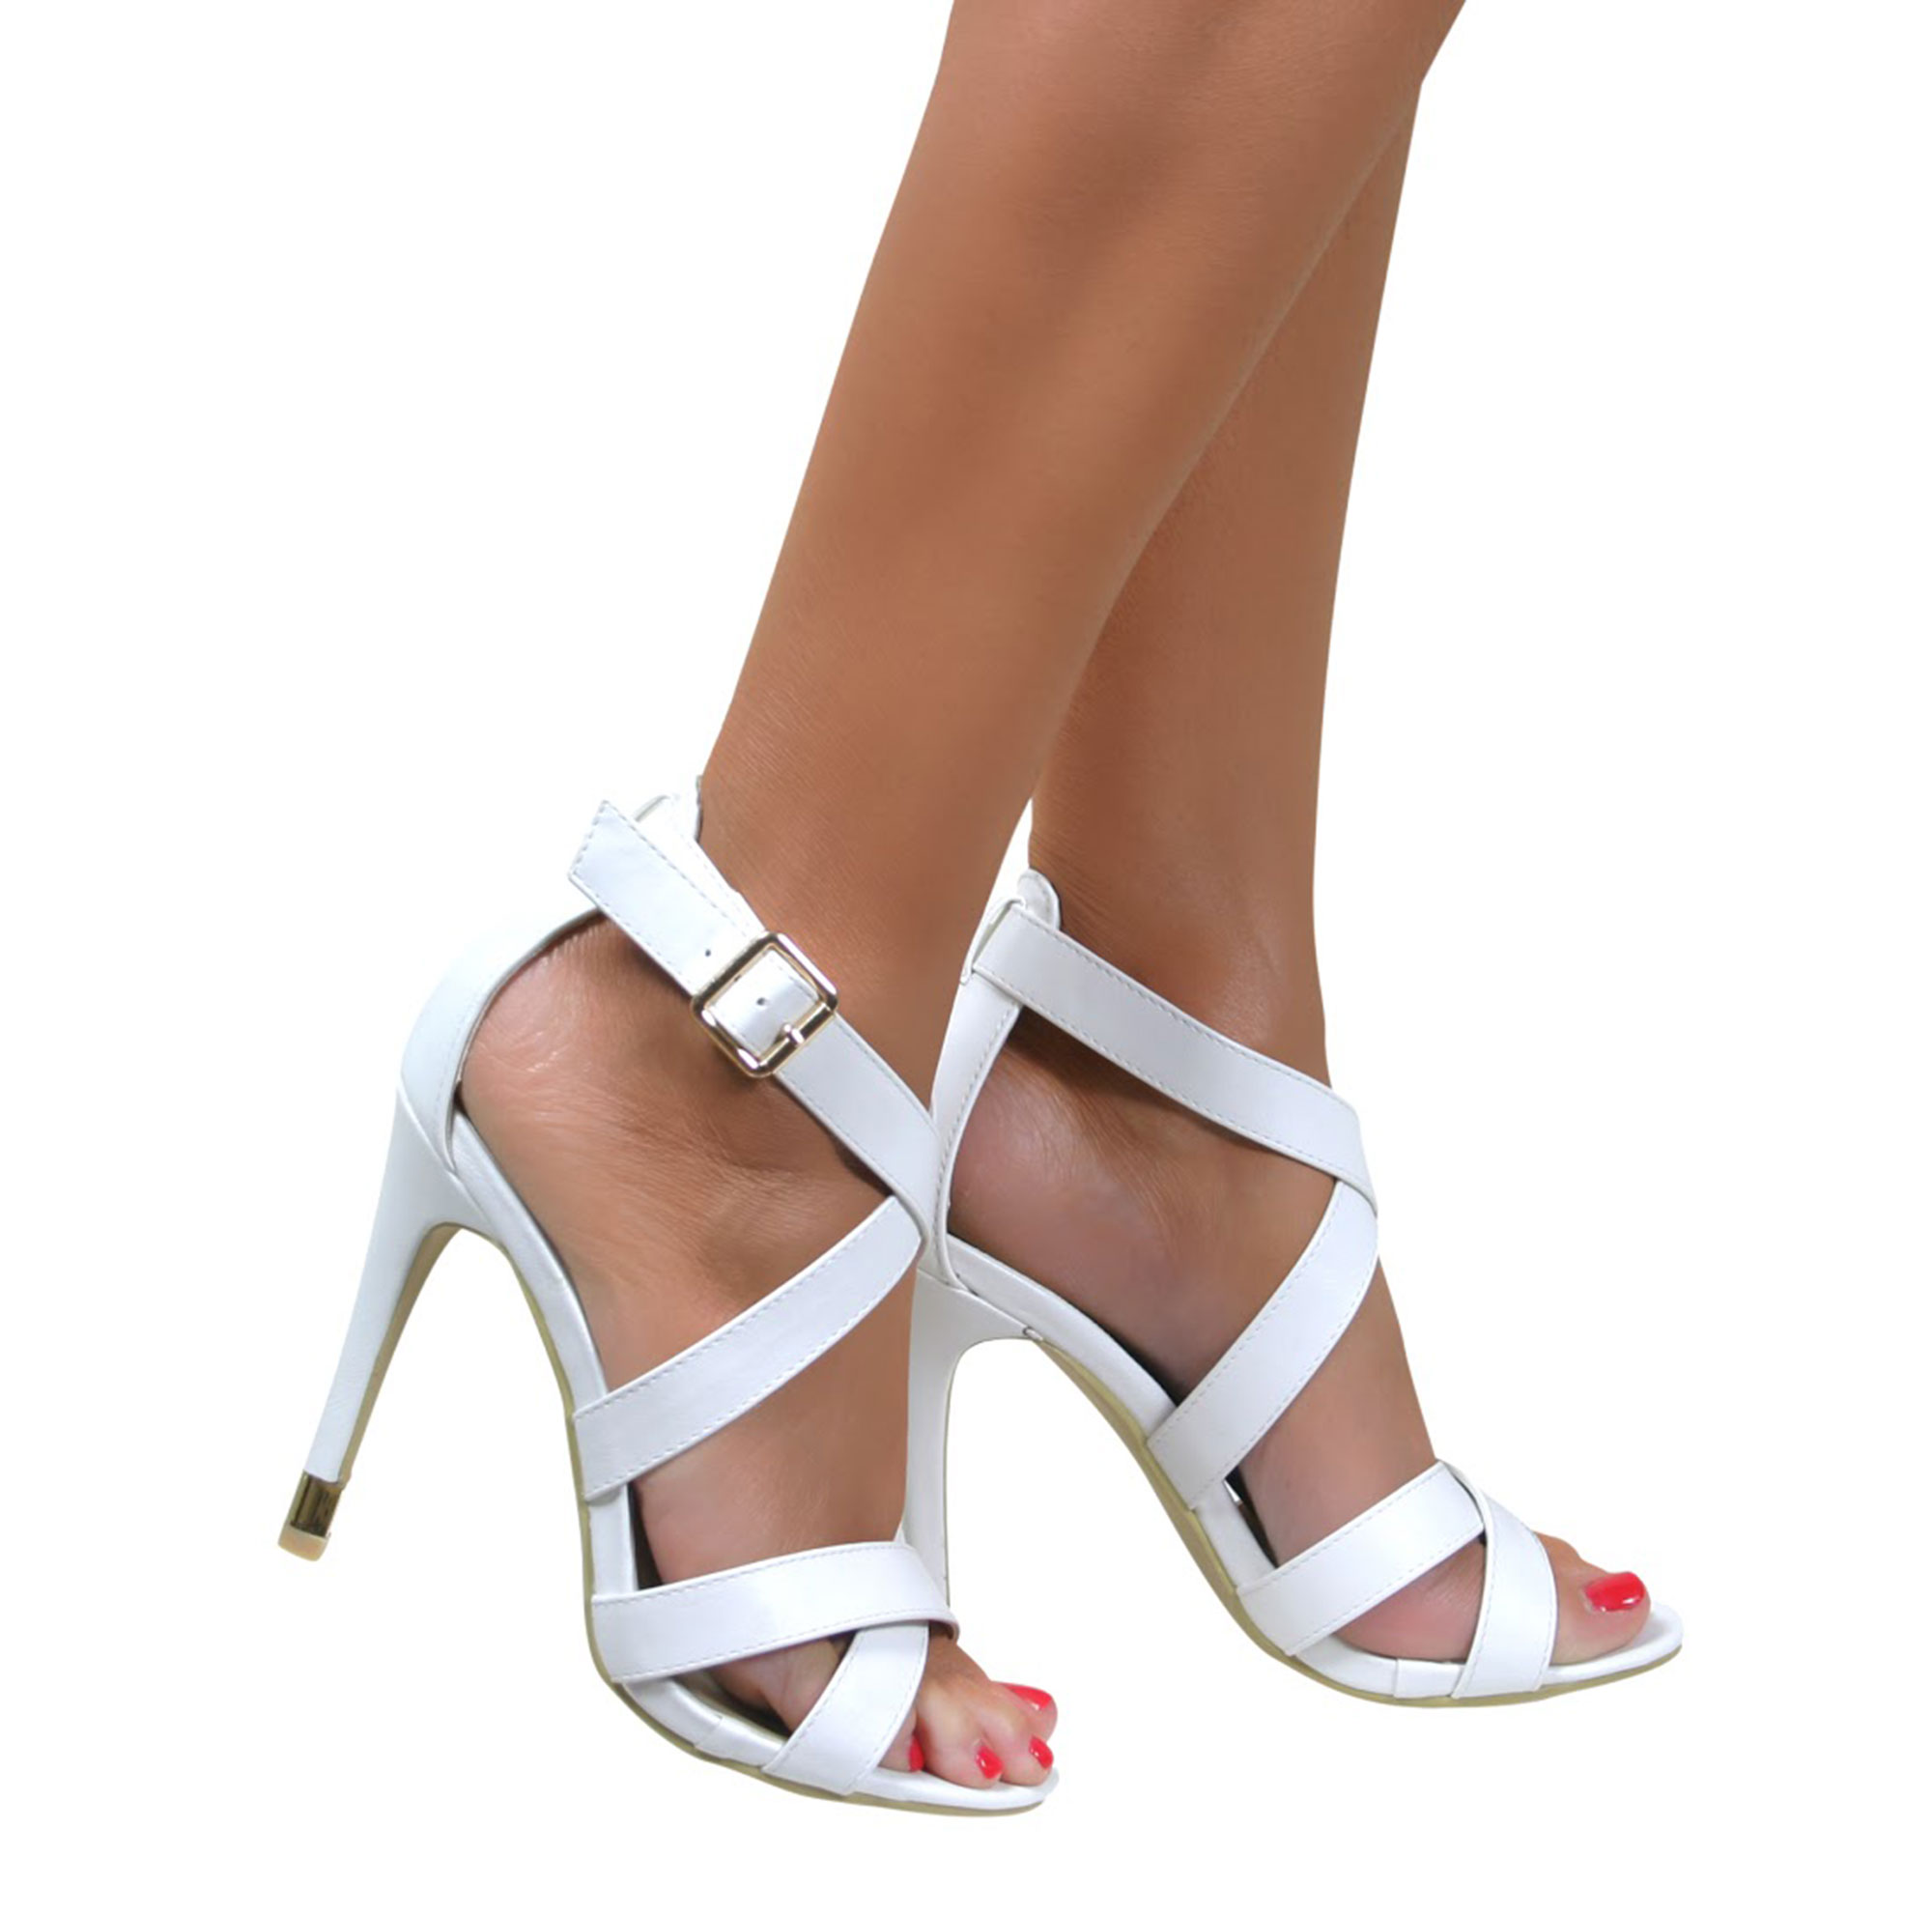 STRAPPY SANDALS STILETTO HEEL ANKLE STRAP BUCKLE HIGH HEELS SHOES ...